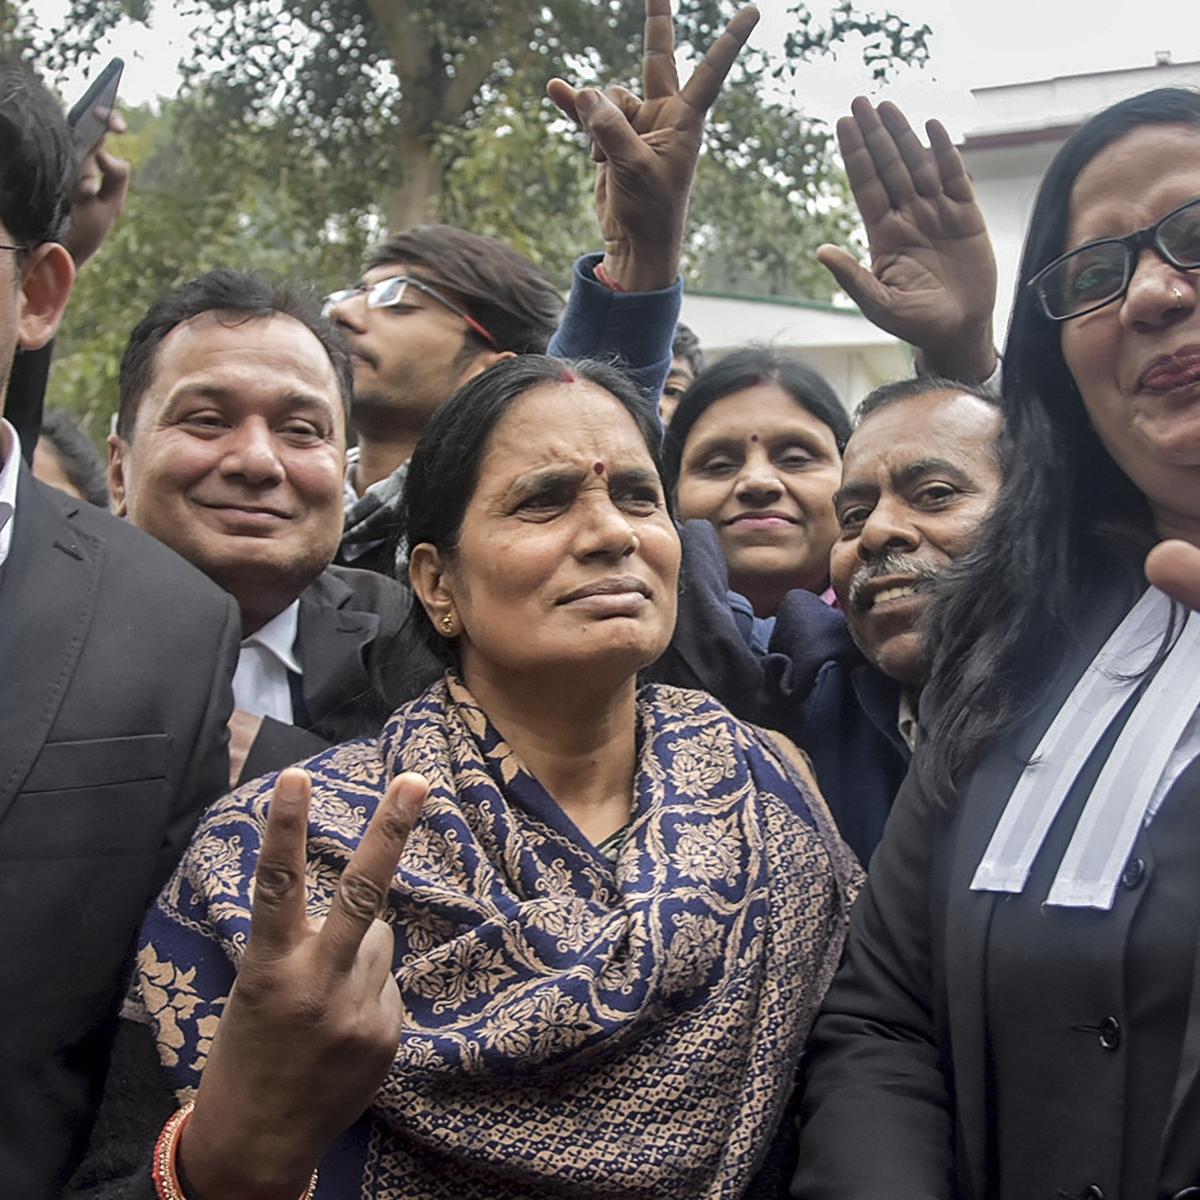 Nirbhaya's rapists hanged: Now, there's hope that common man can get justice, say Bhopalites